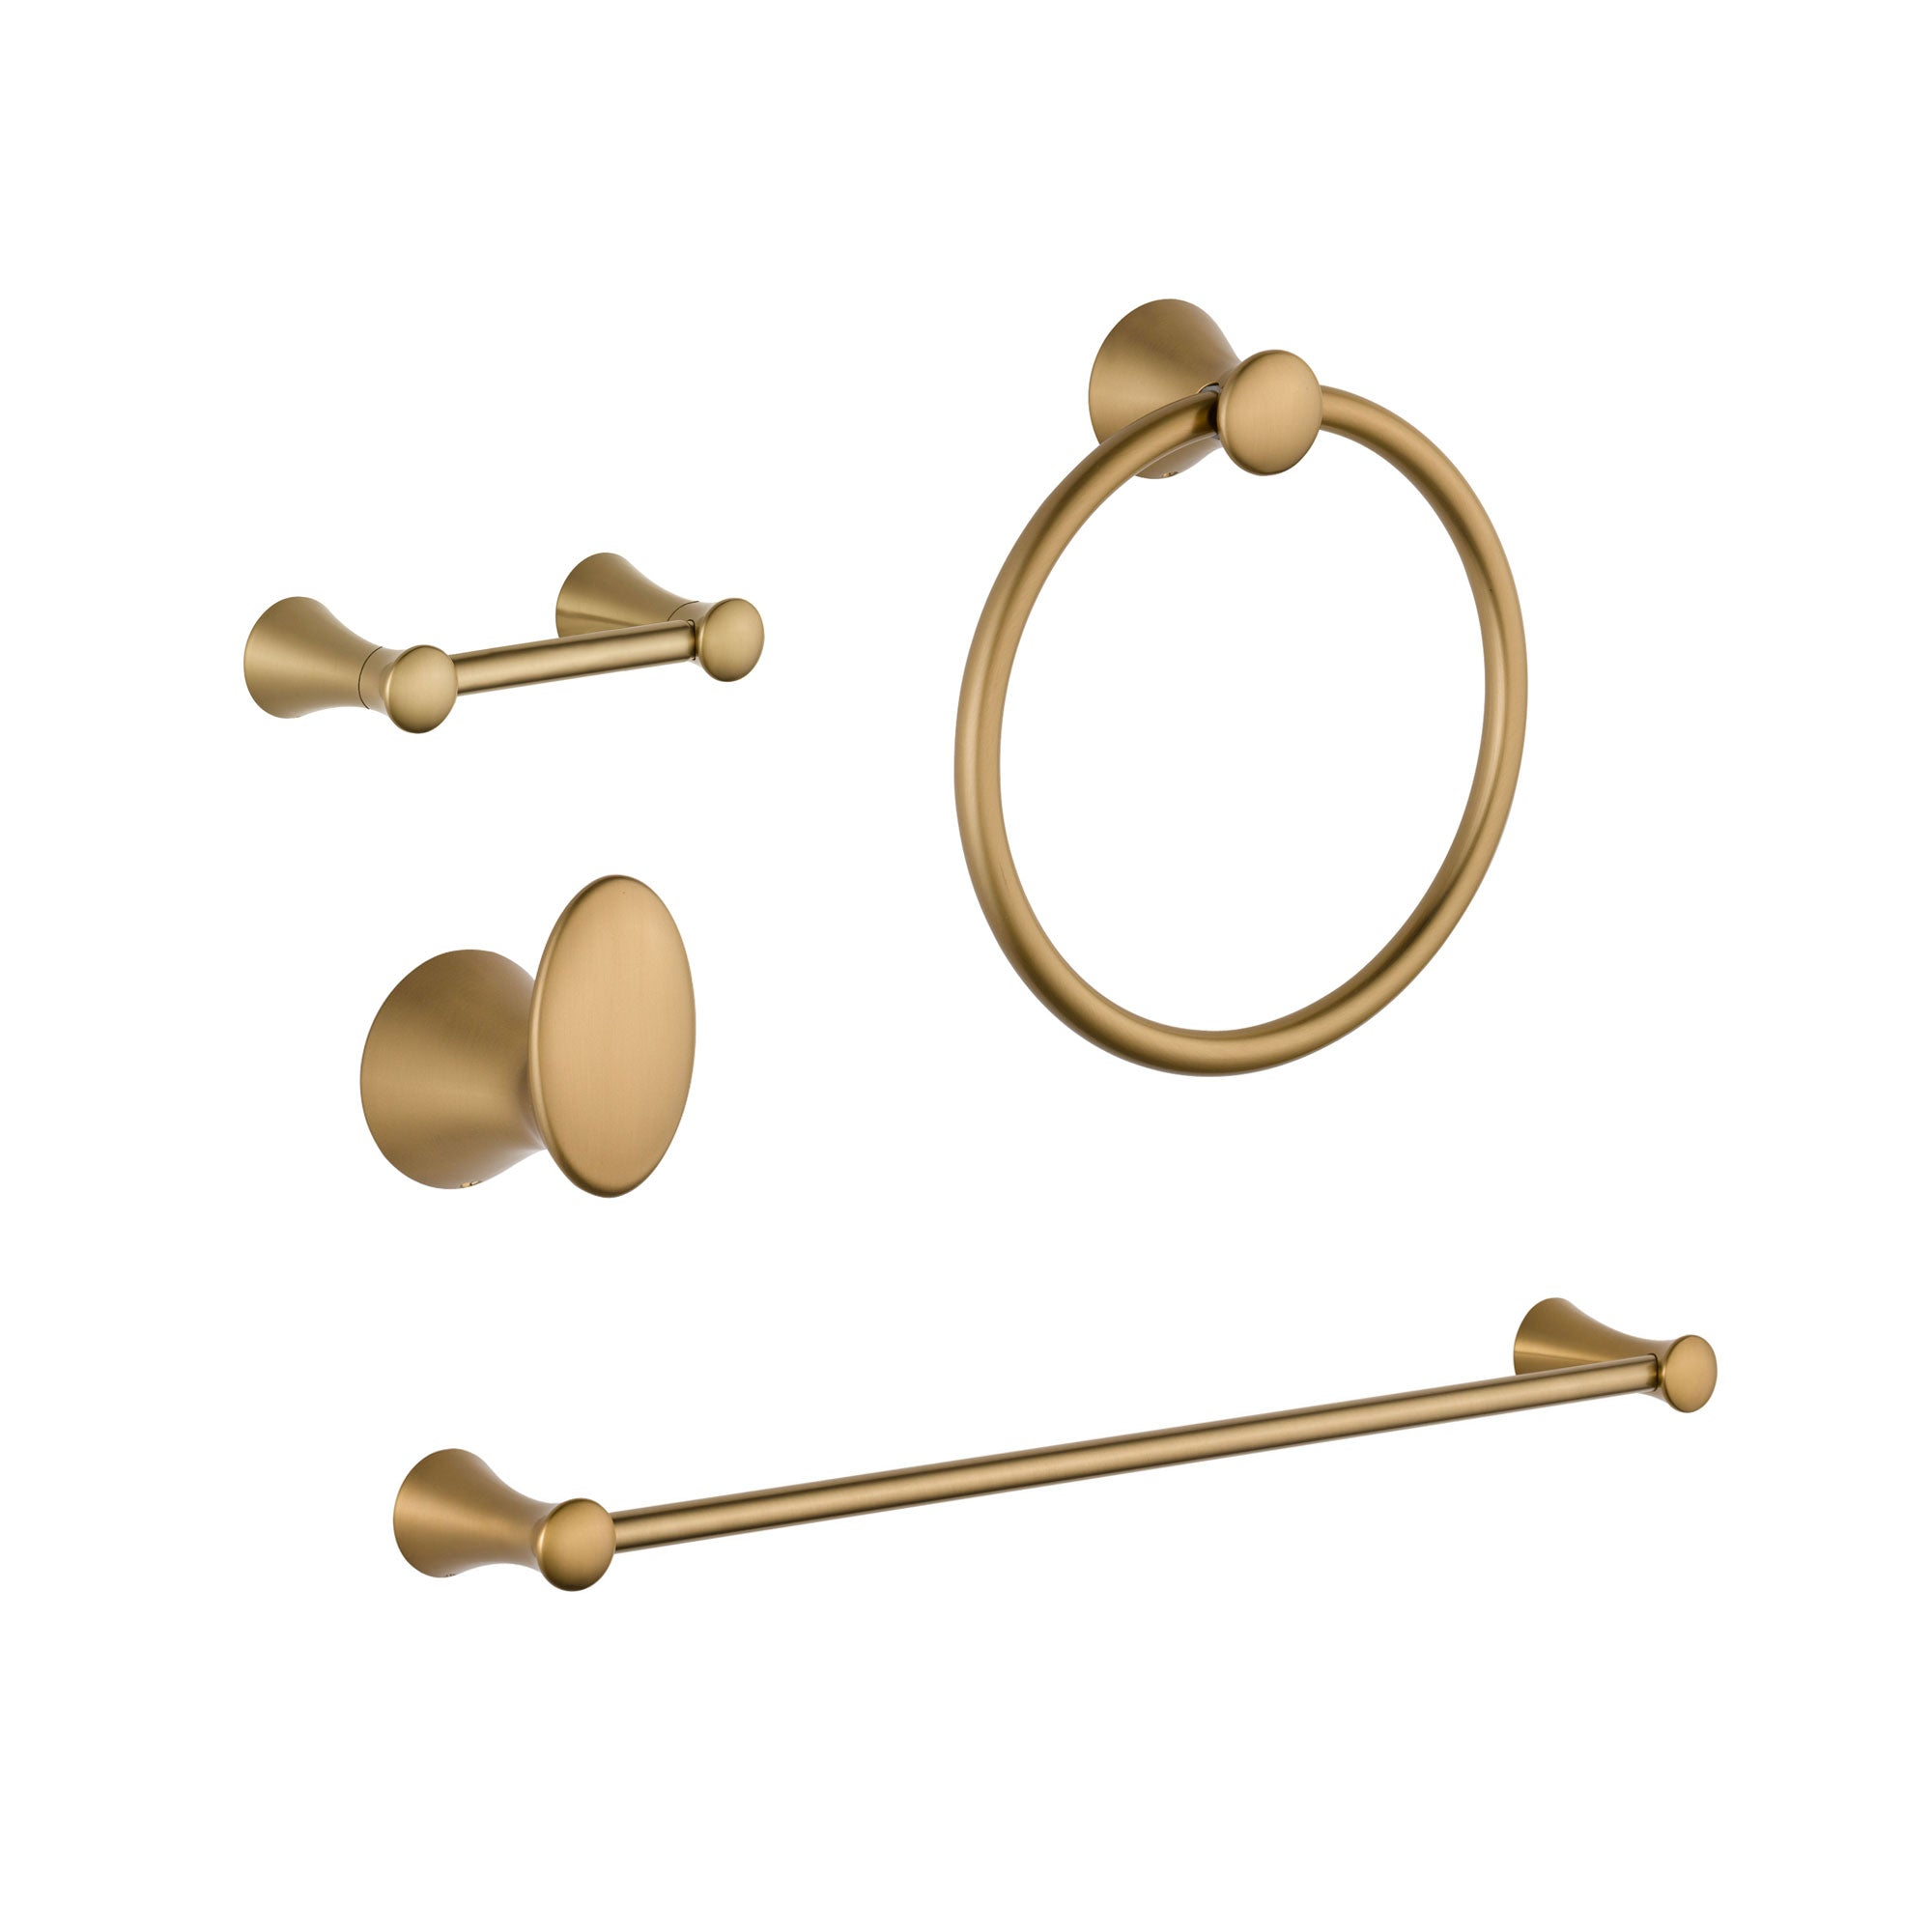 "Delta Lahara Champagne Bronze DELUXE Bathroom Accessory Set Includes: 24"" Towel Bar, Toilet Paper Holder, Robe Hook, and Towel Ring D10051AP"